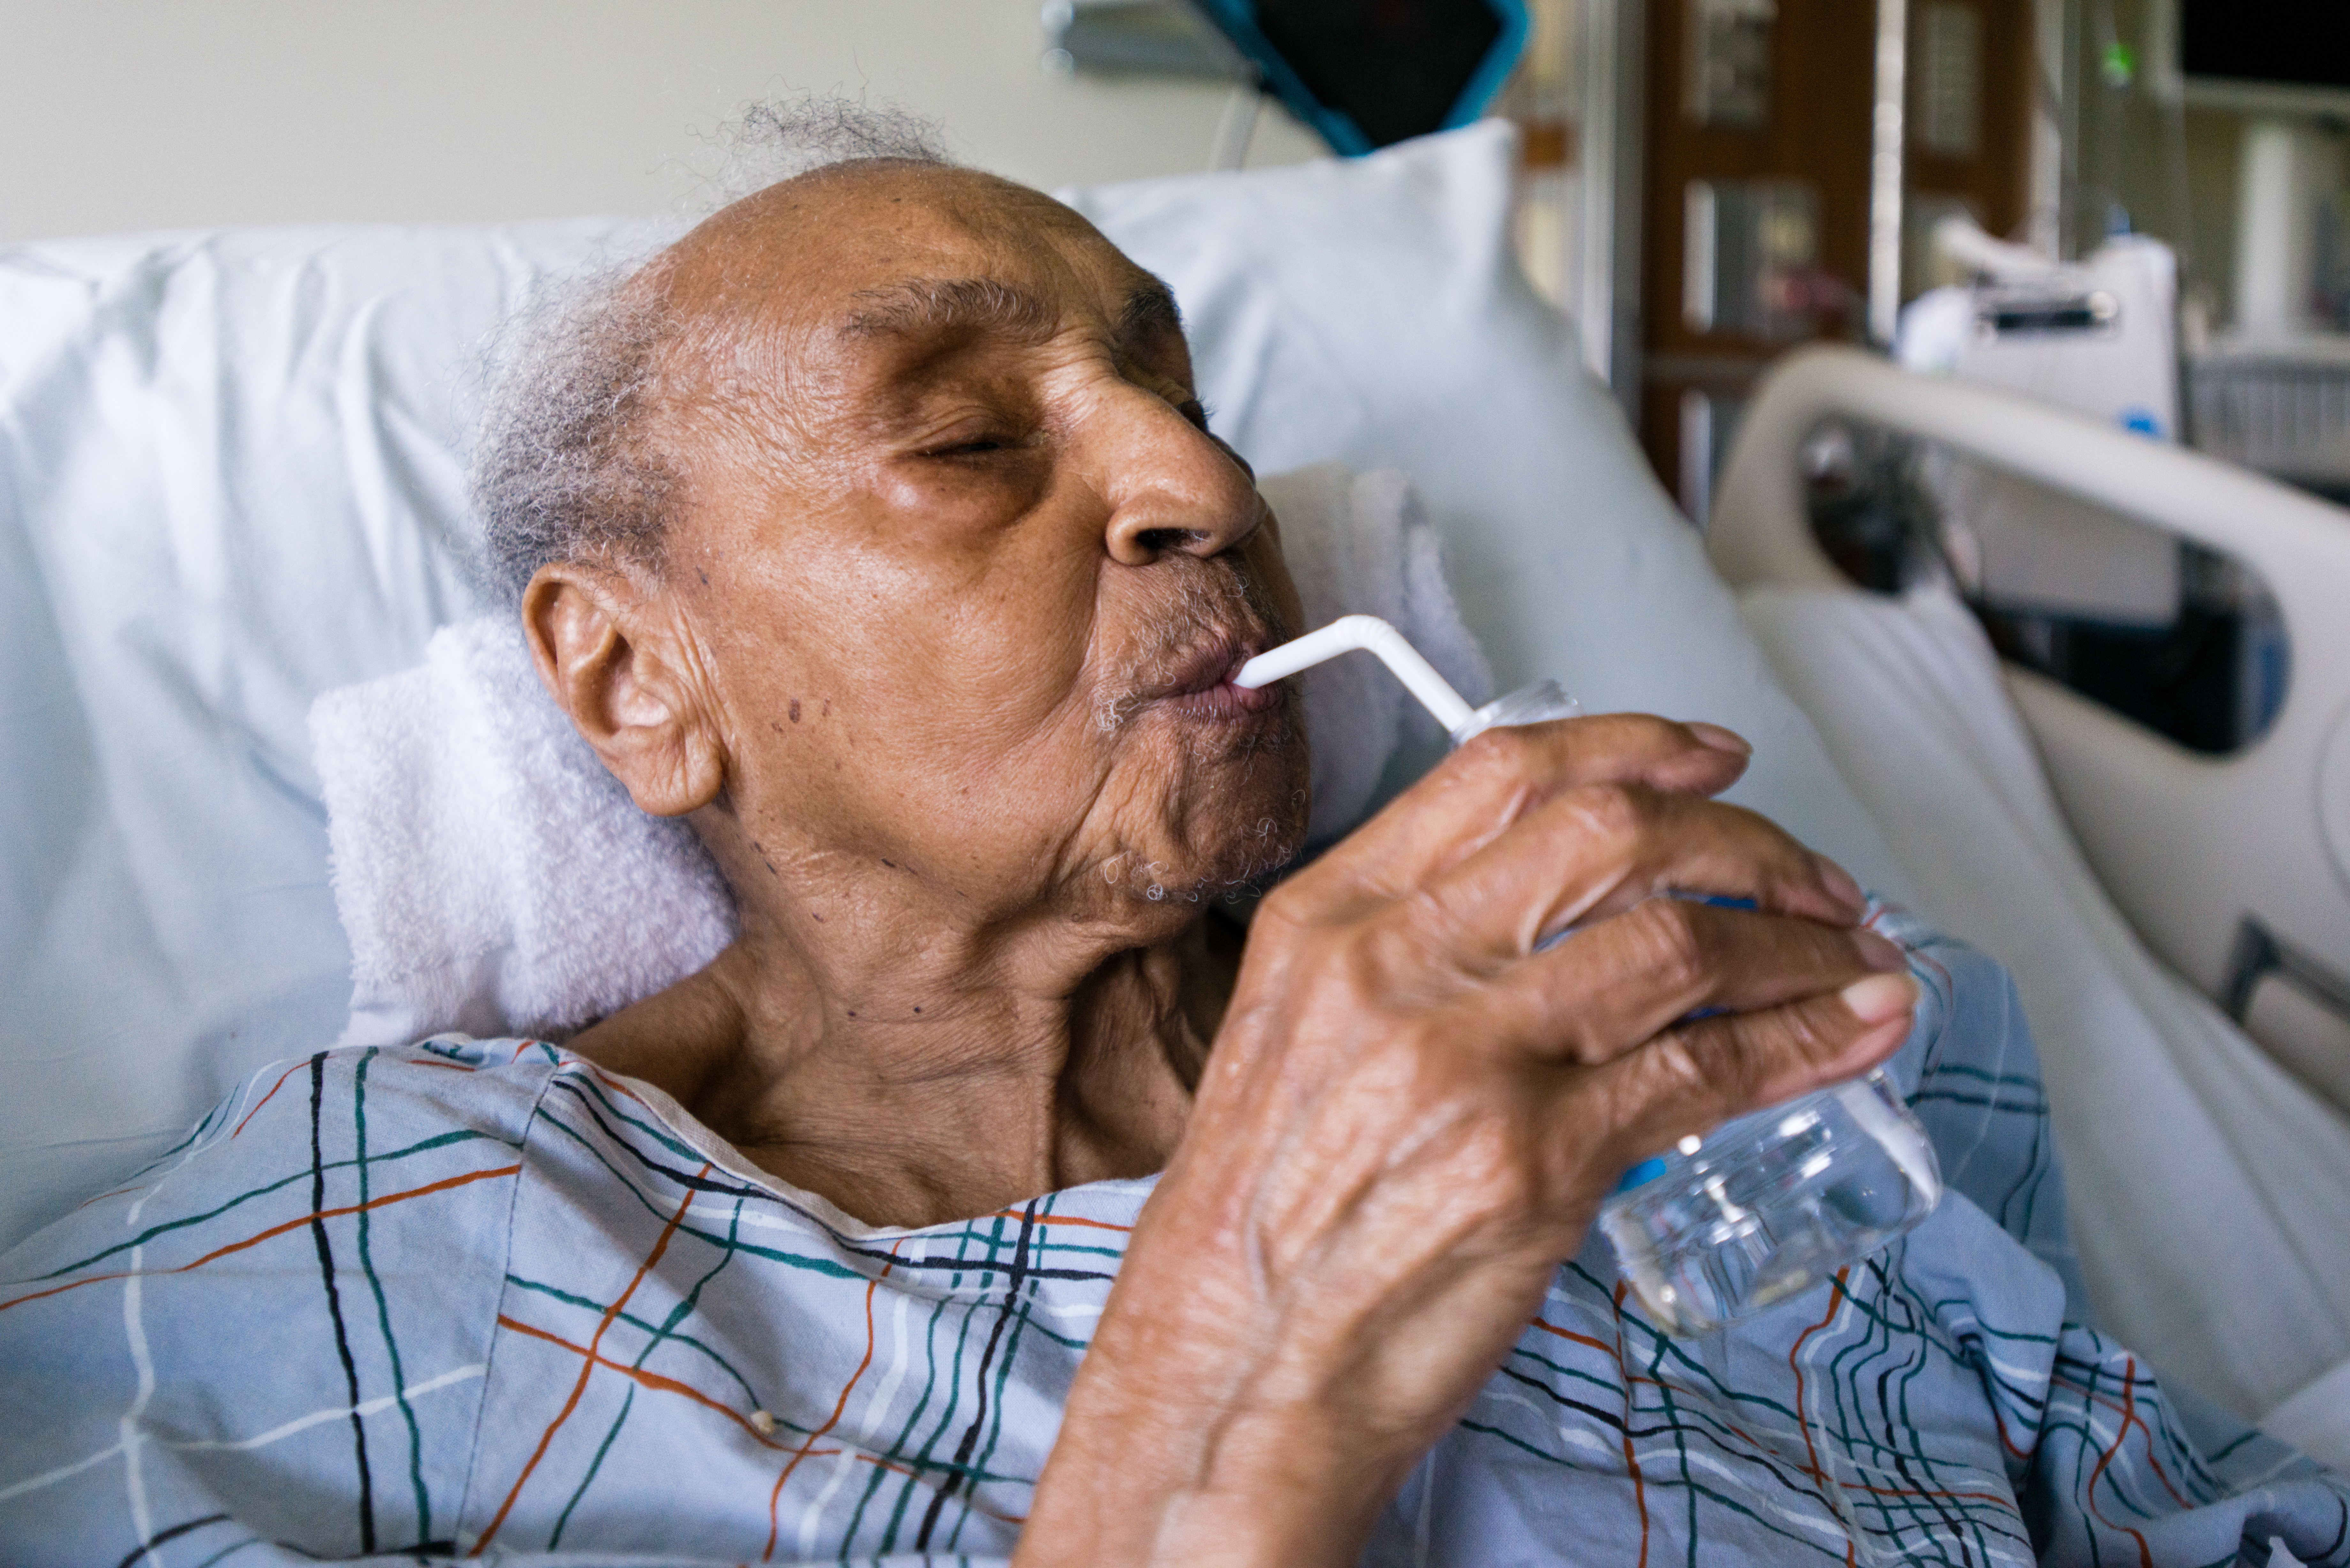 Hattie Hill, 105, was admitted to Mt. Sinai Hospital in New York on May 24, 2016. Hill, who has arthritis and a history of strokes, said she prefers the emergency room for seniors because of the extra attention. (Heidi de Marco/CHL)